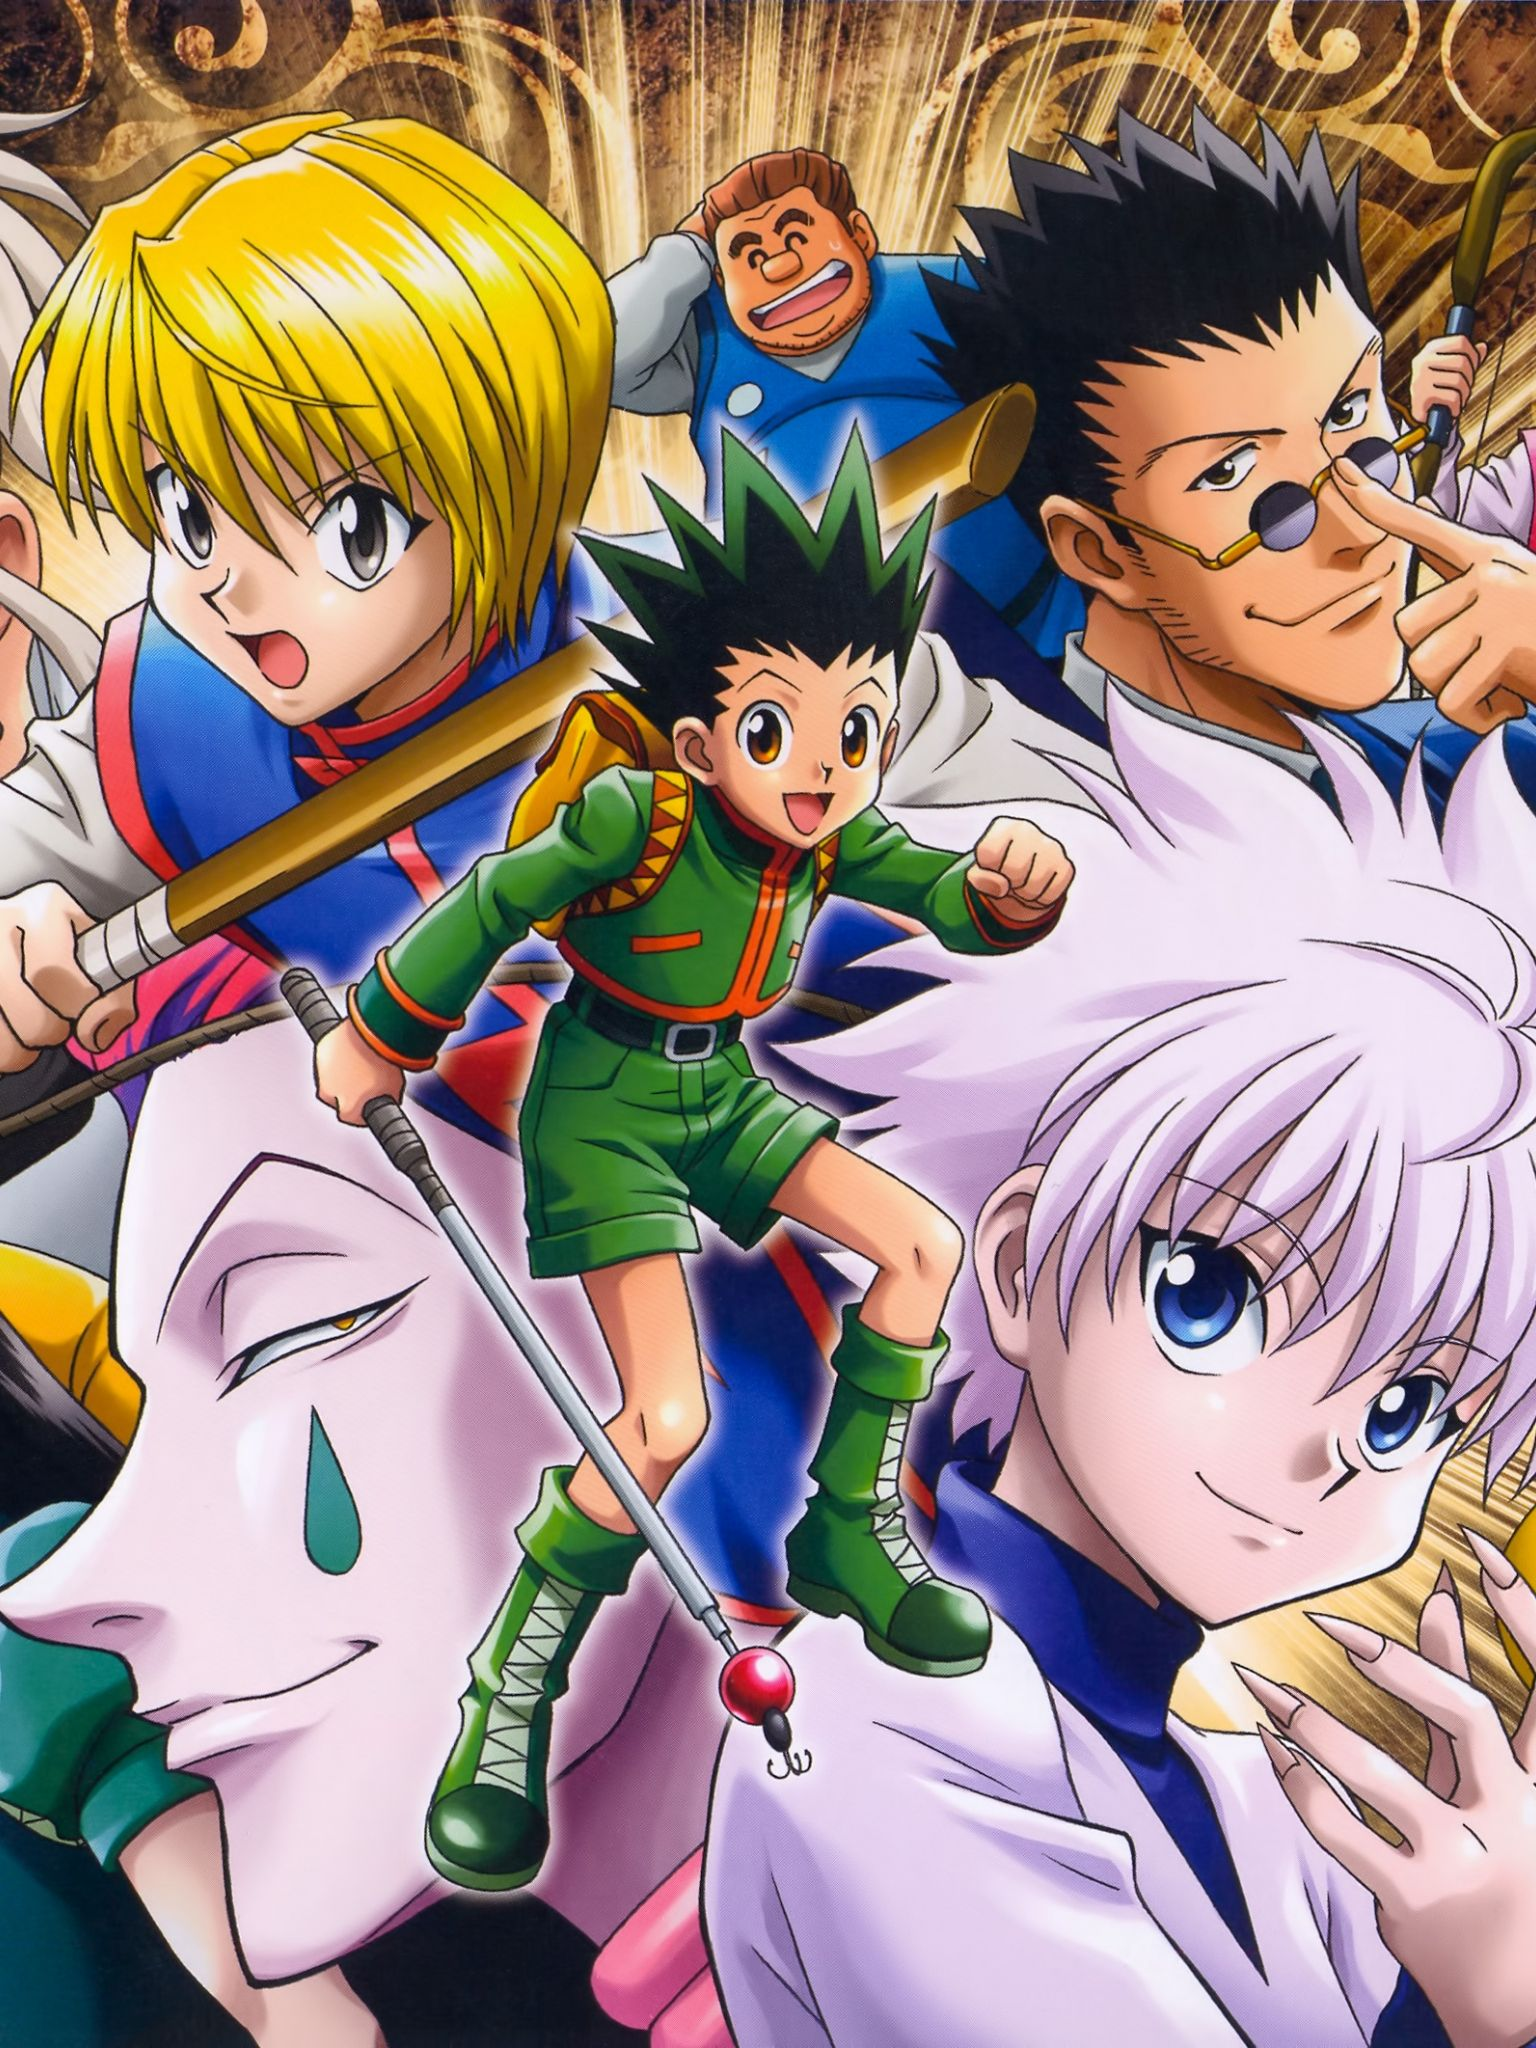 Anime desktop backgrounds 87 pictures Anime Aesthetic HxH Wallpapers - Wallpaper Cave